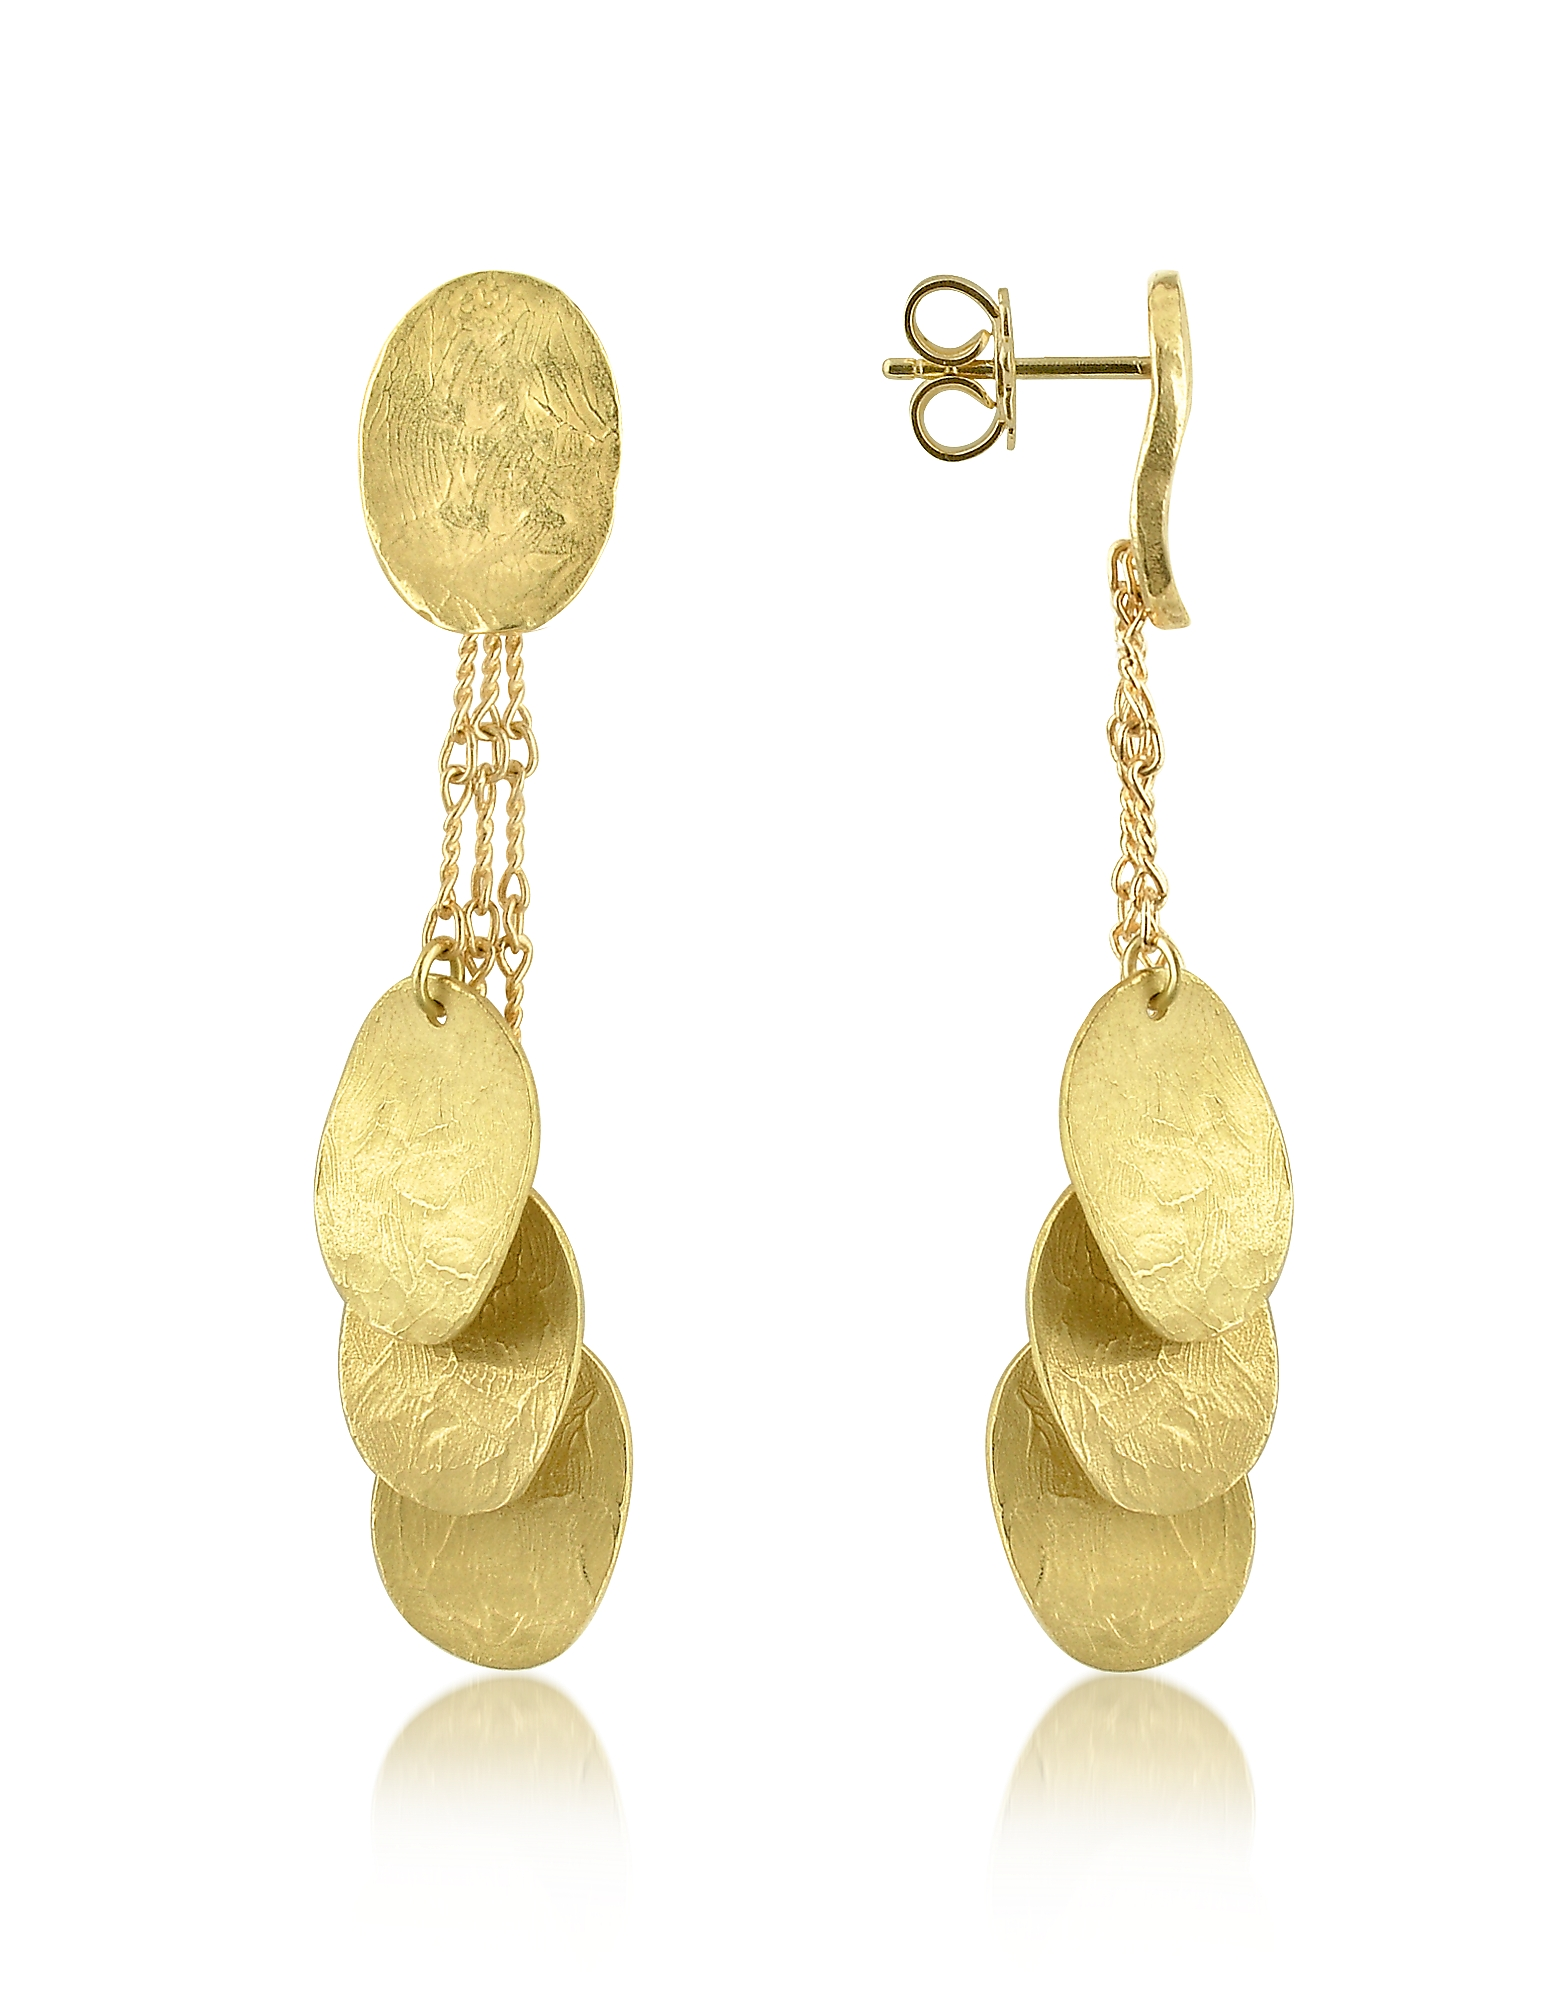 Torrini Earrings, Nuvole Moving - 18K Gold Drop Earrings